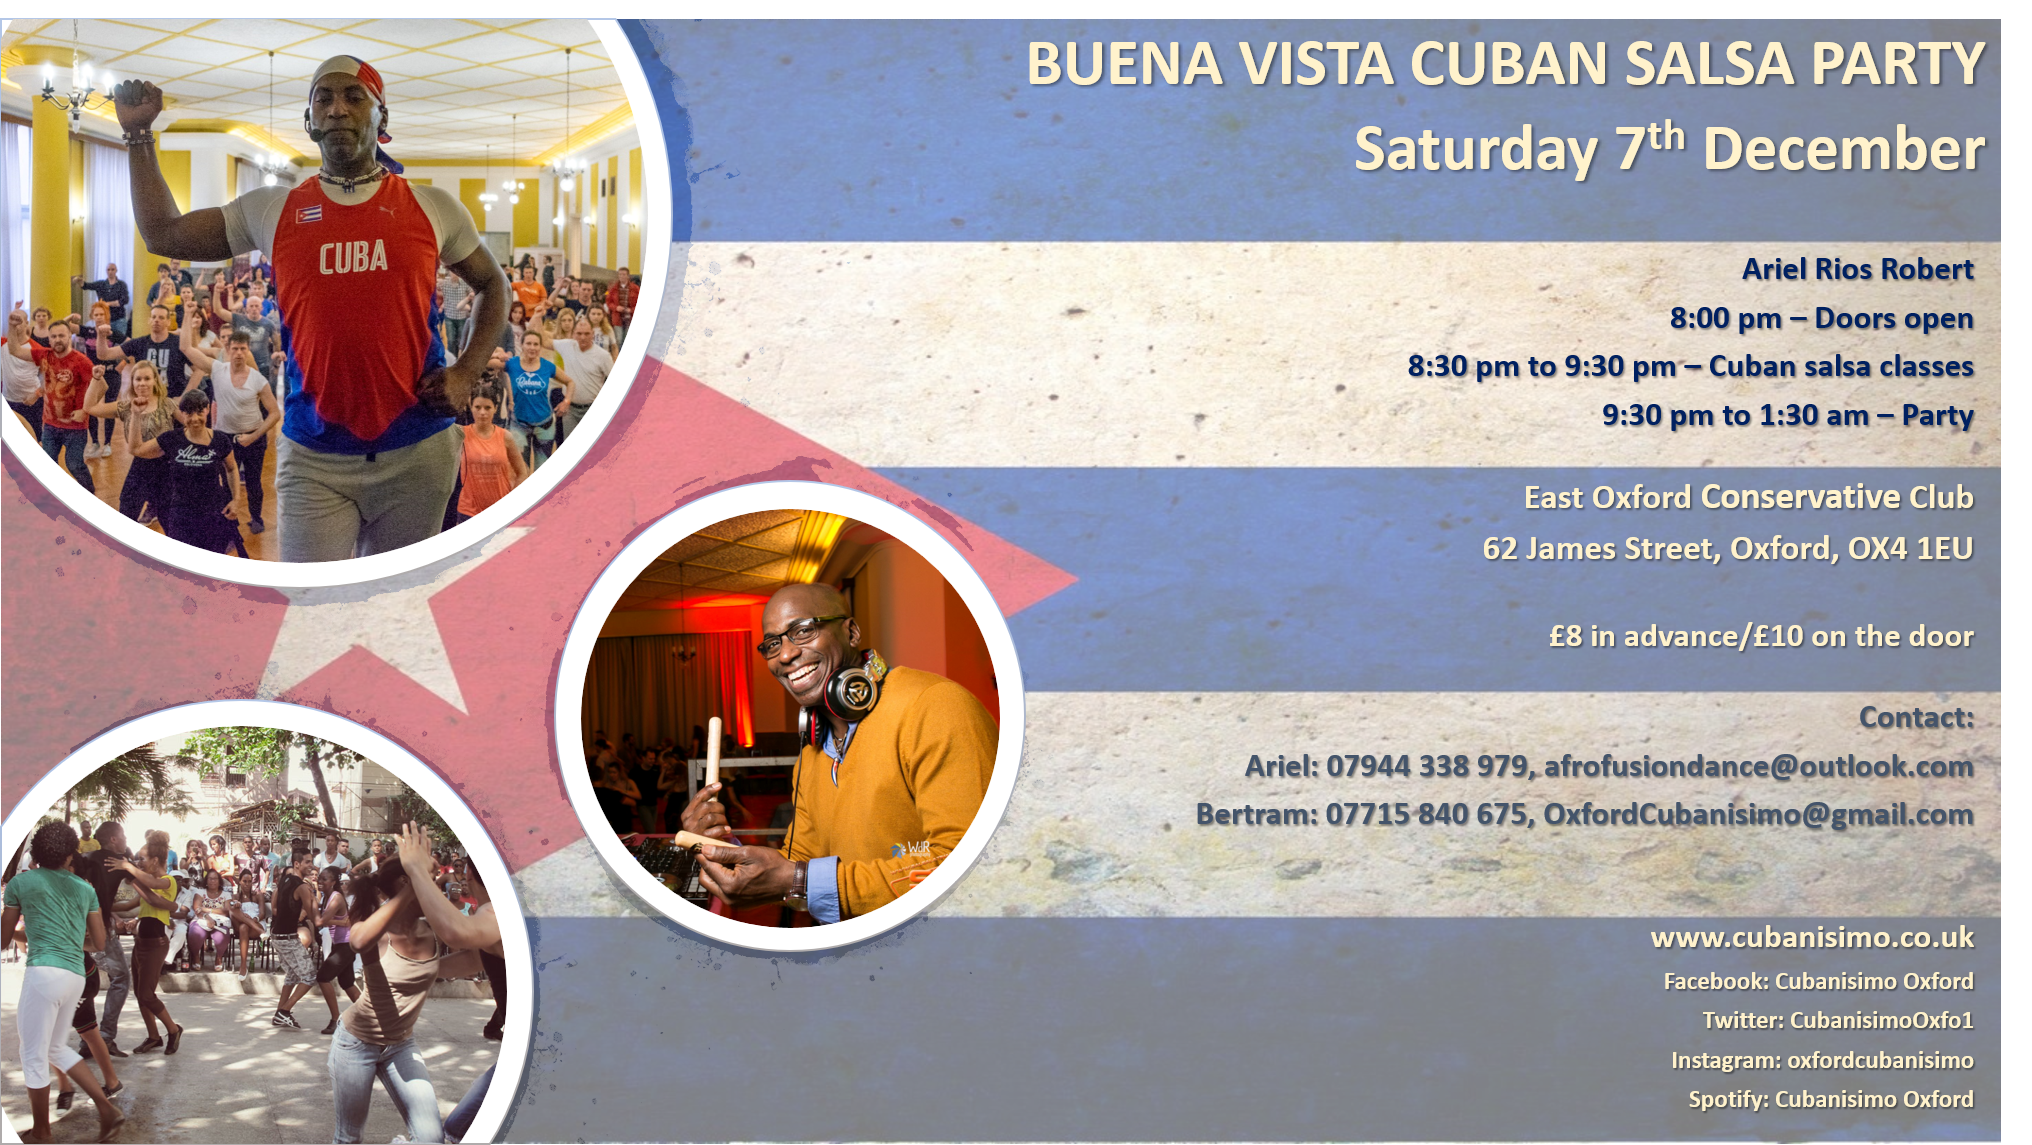 Cuban Salsa Party in Oxford